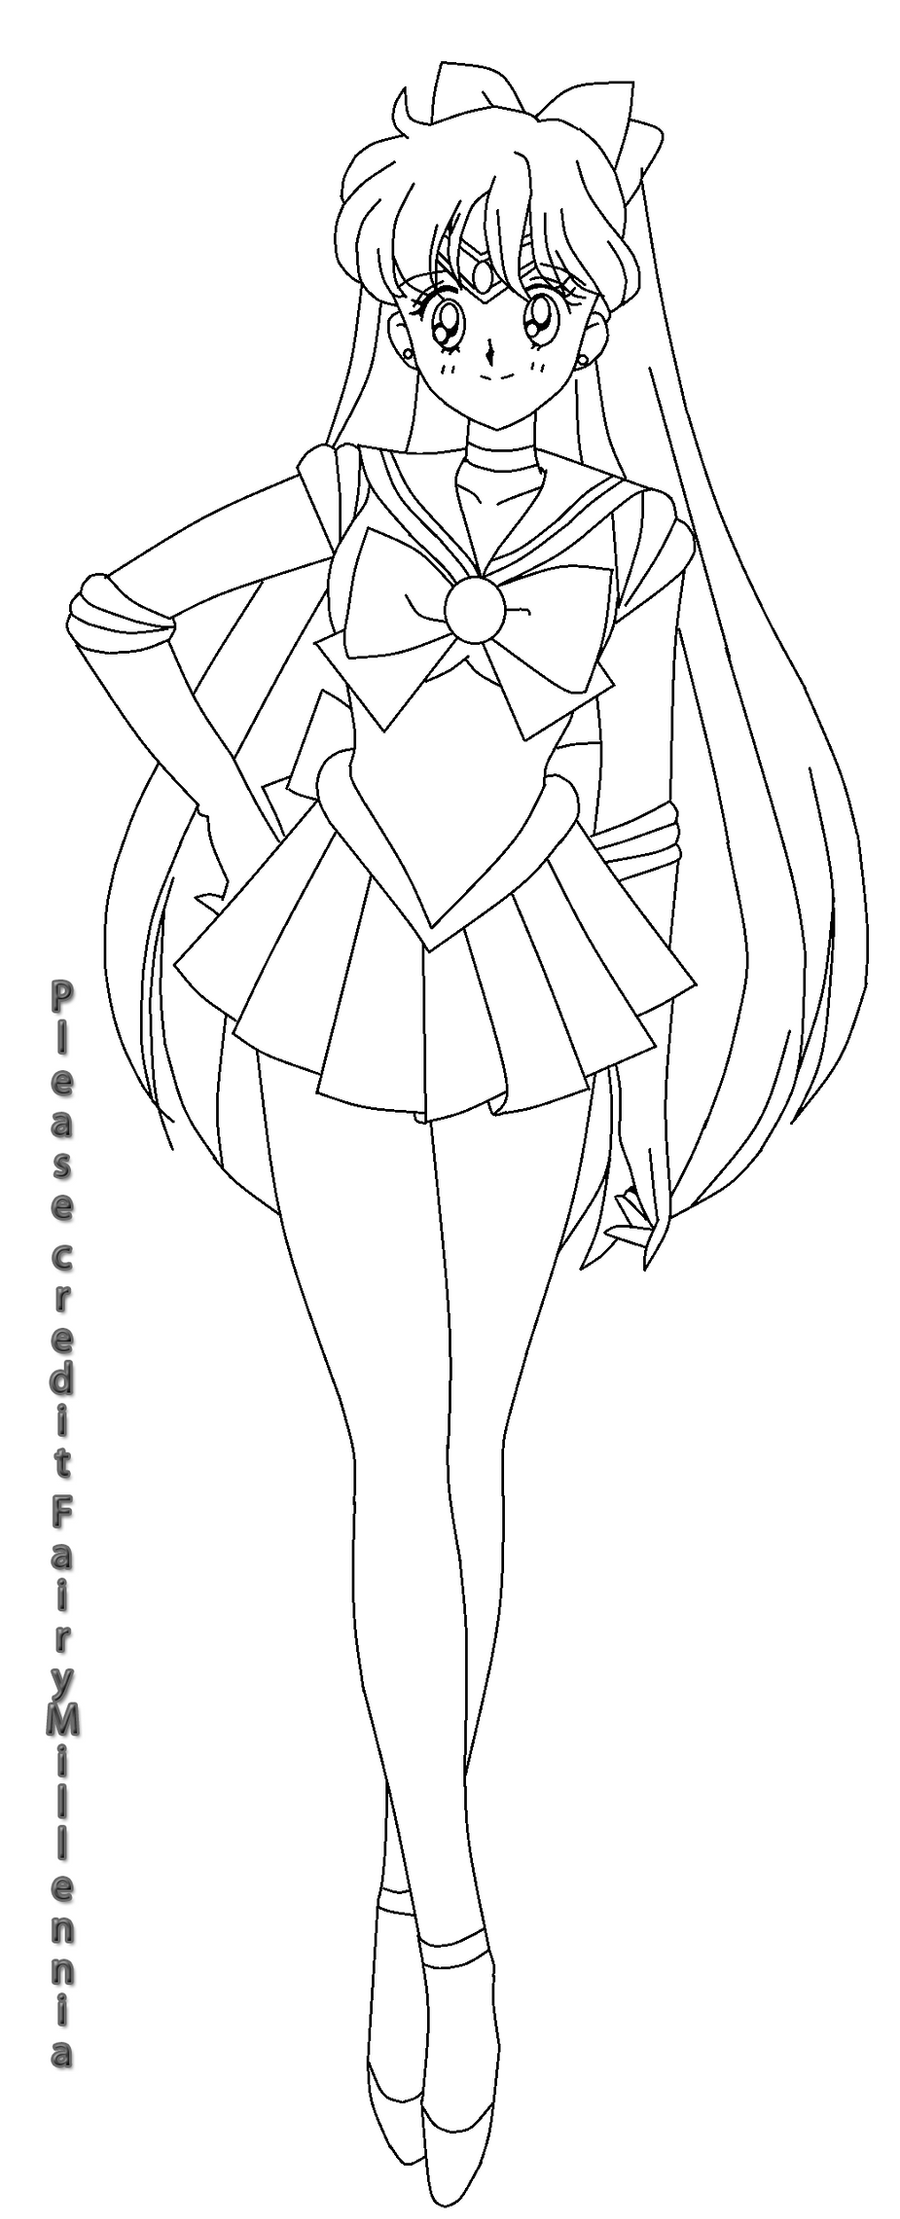 Coloring Pages Sailor Venus Coloring Pages sailor venus base by princess of asteria on deviantart asteria